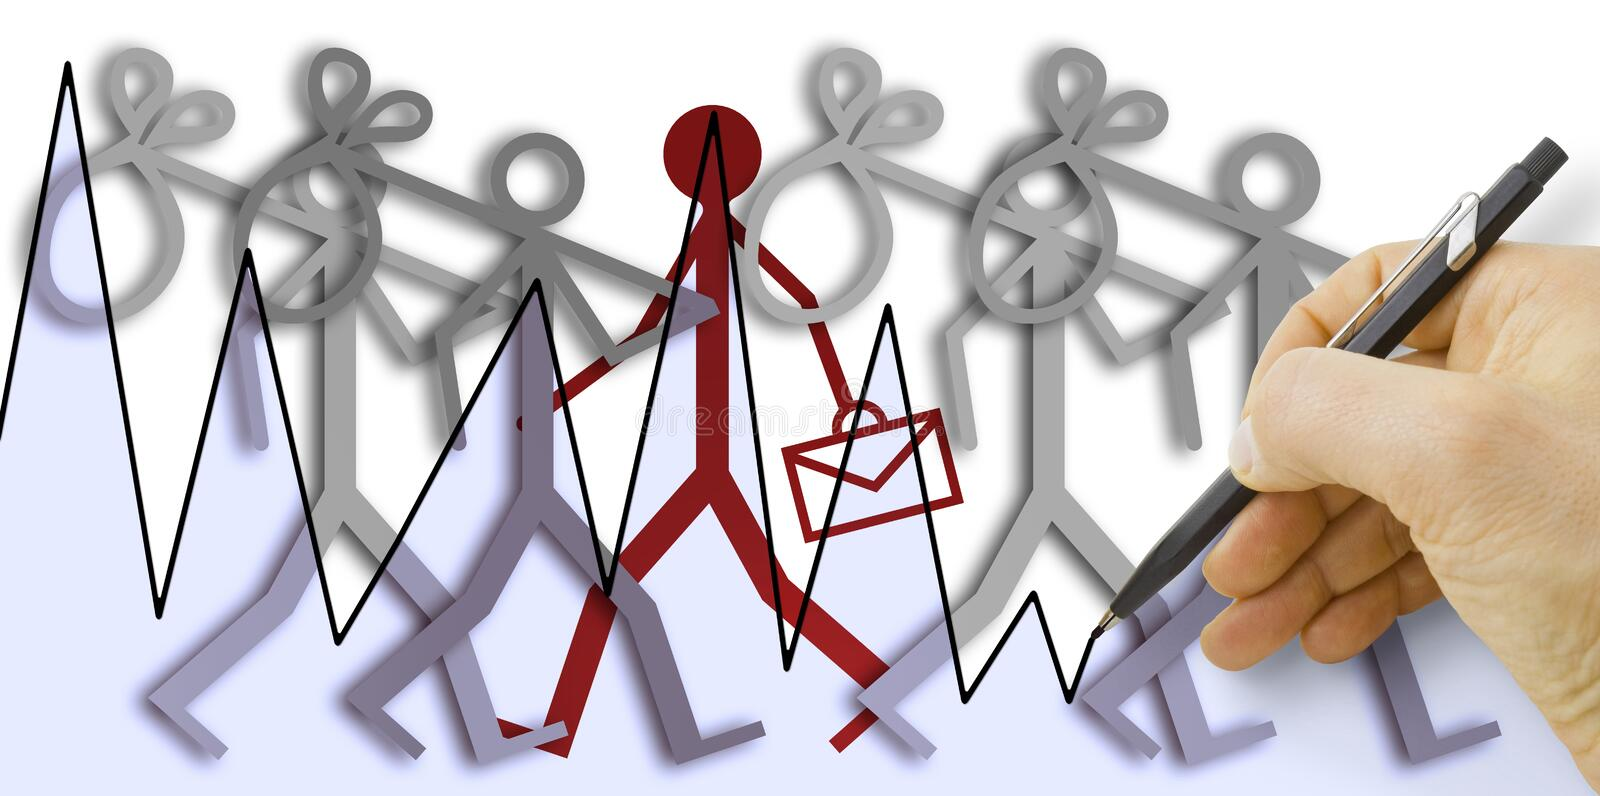 Hand drawing a chart about employment and unemployment trends - concept image.  stock image